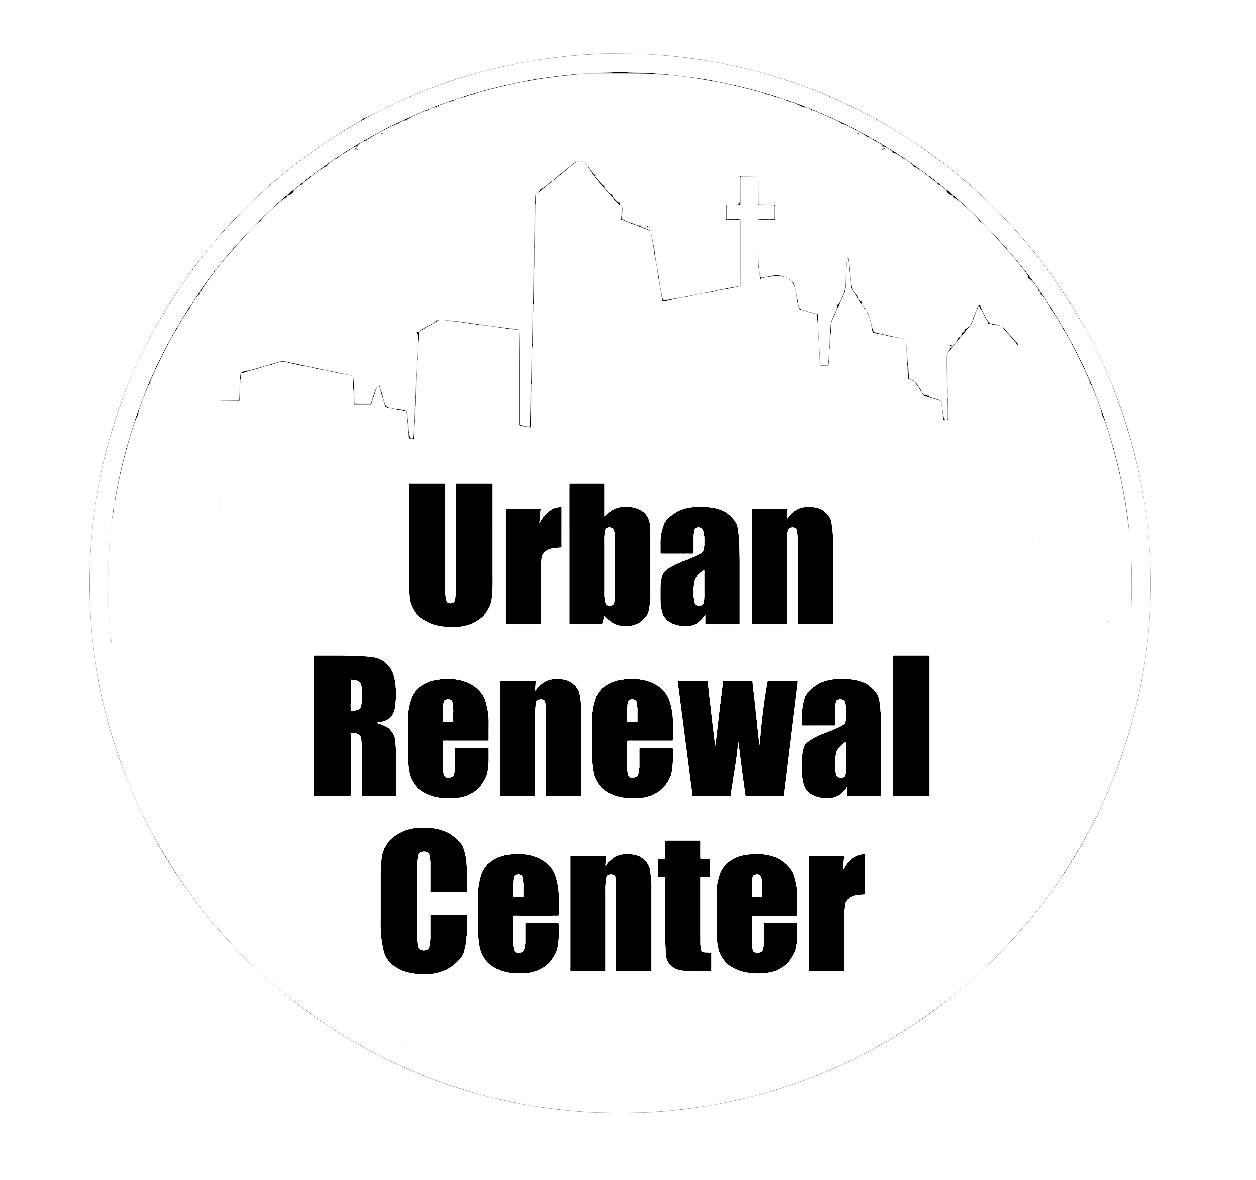 The Urban Renewal Center